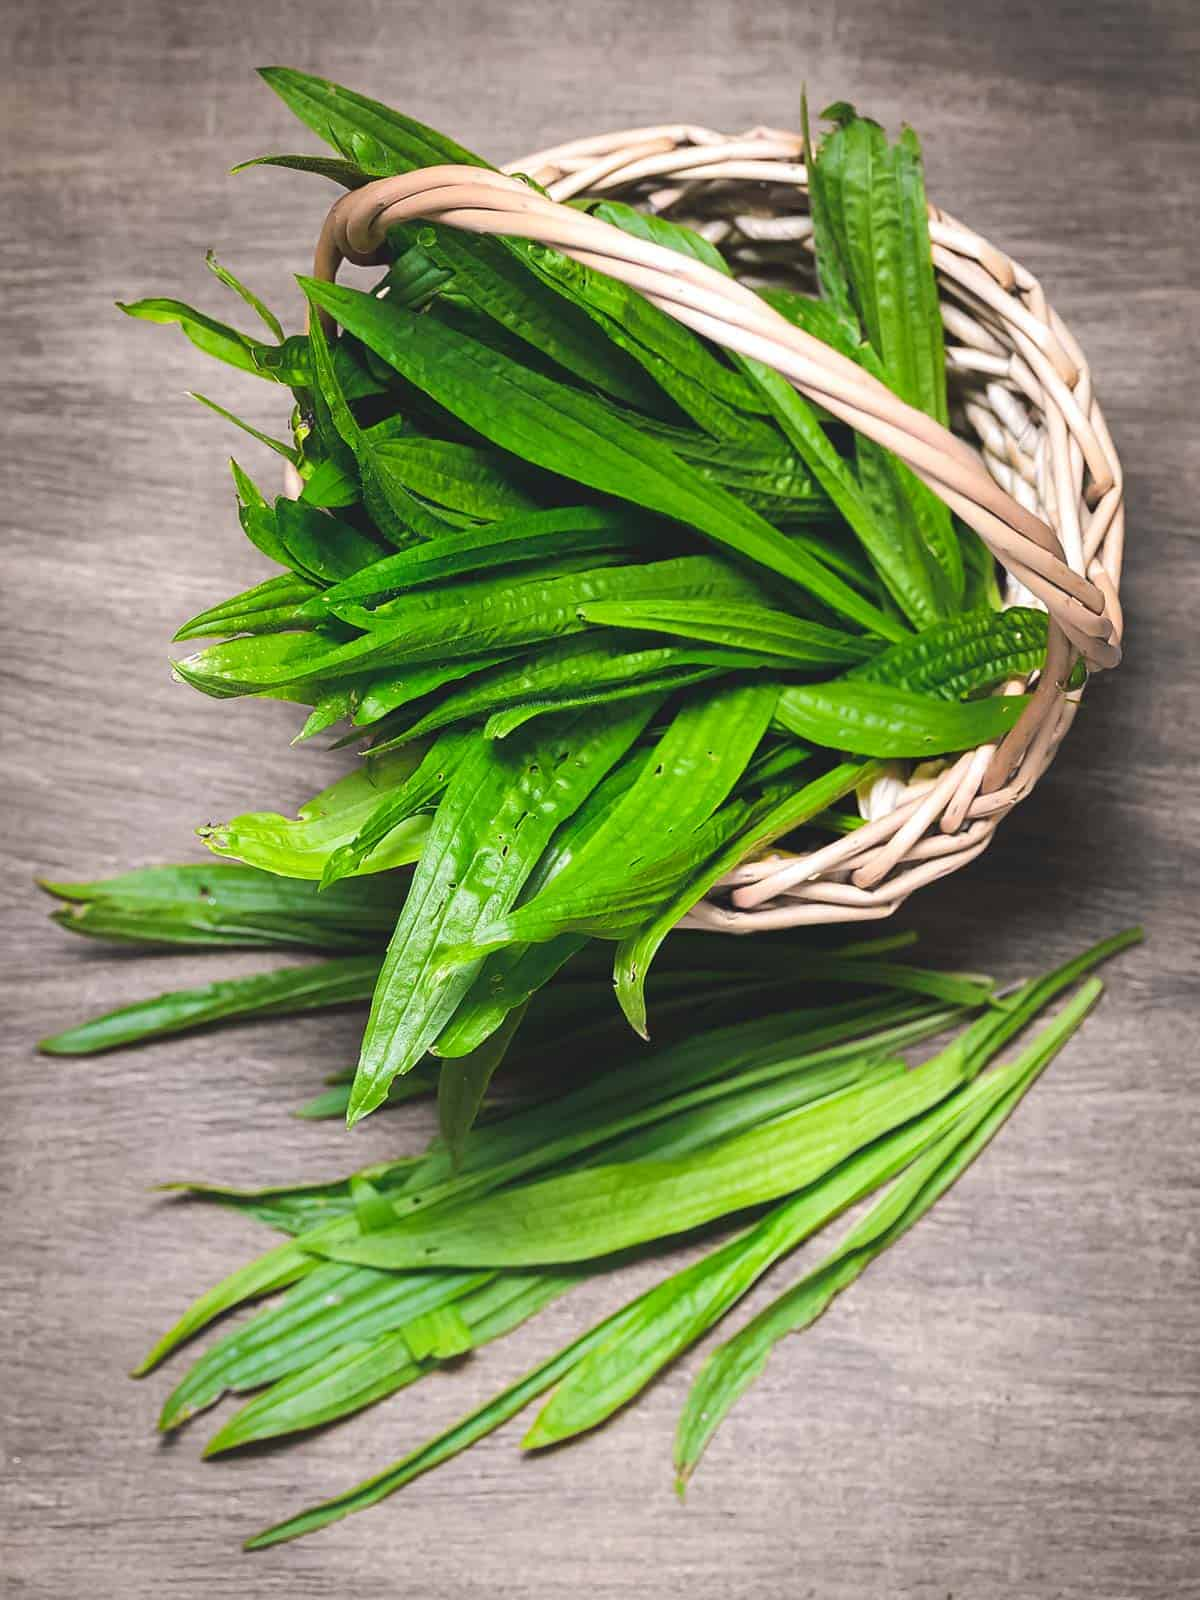 a harvest basket full of narrowleaf plantain